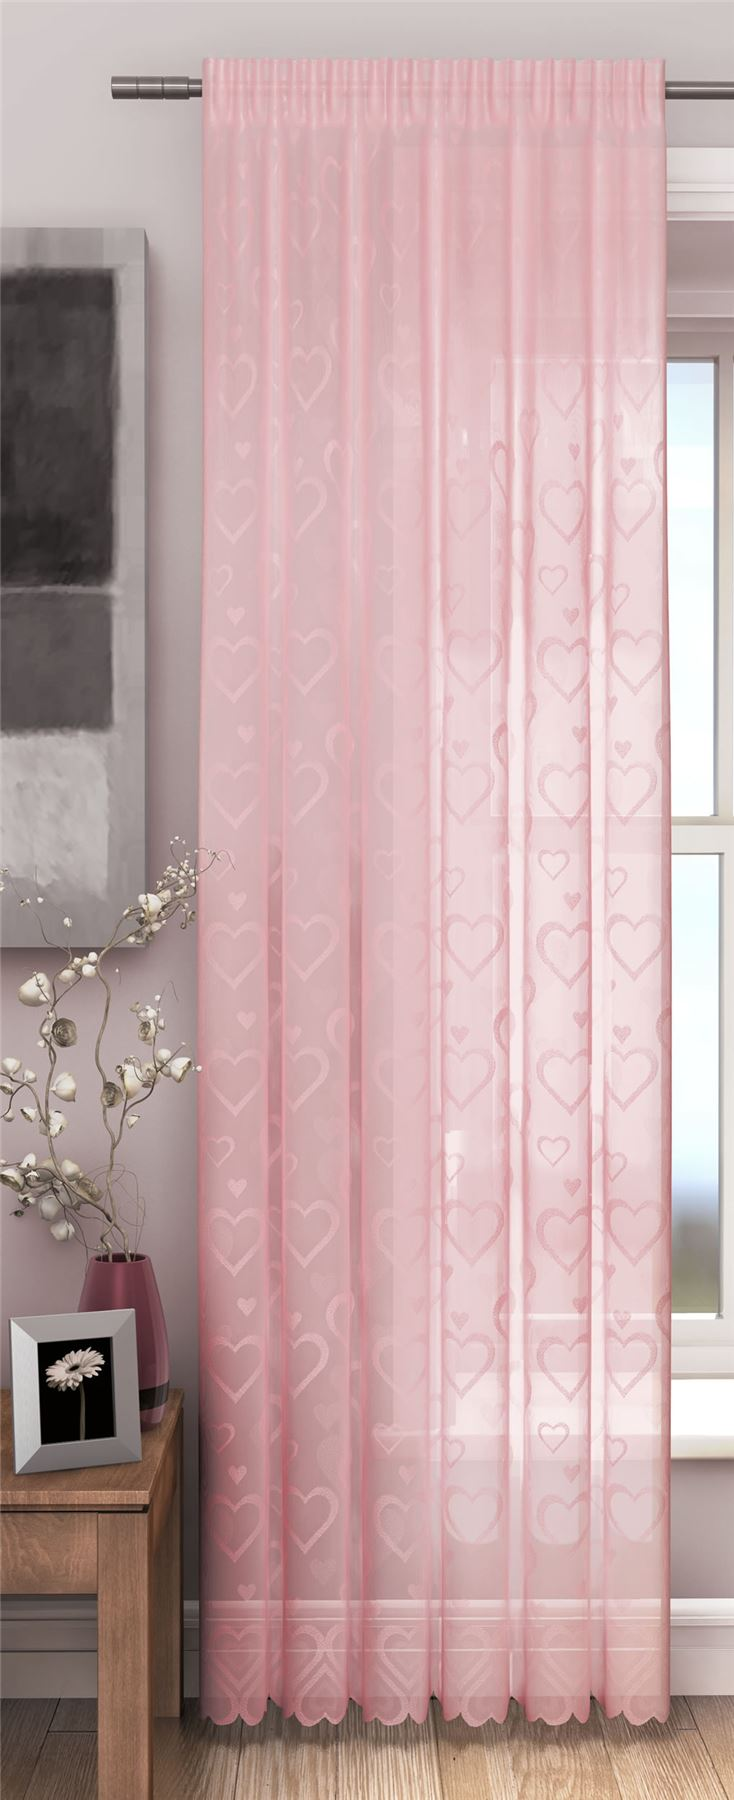 Home amp garden gt curtains amp blinds gt curtains